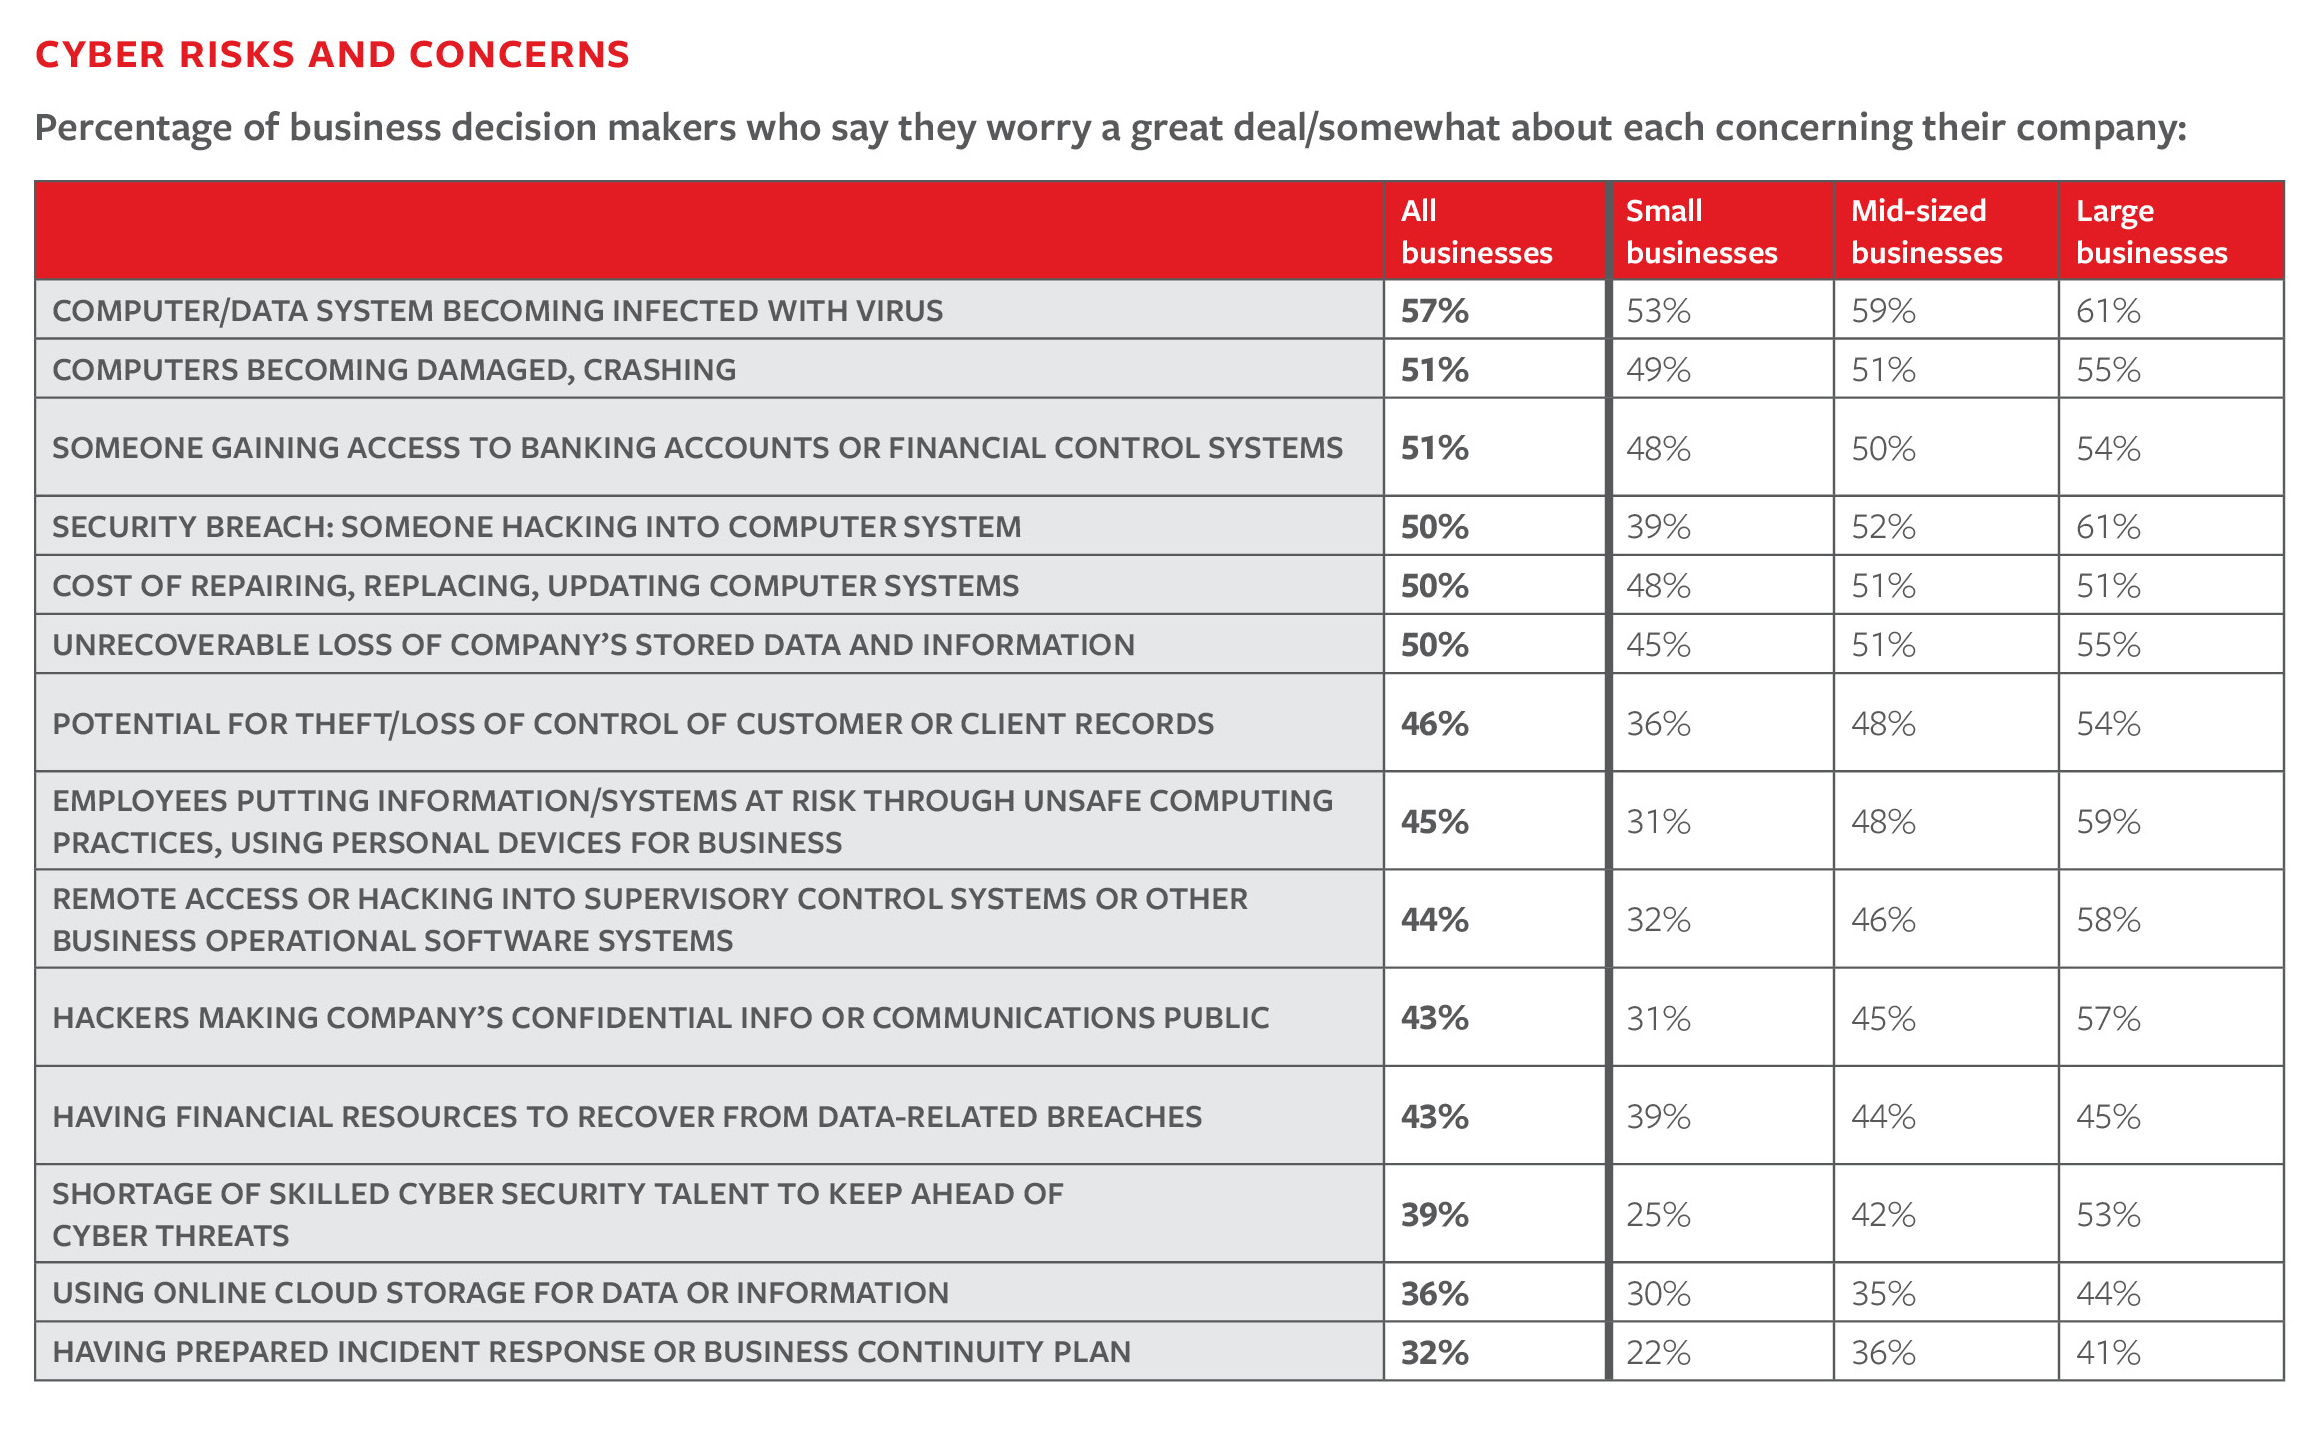 Chart: Cyber risks and concerns